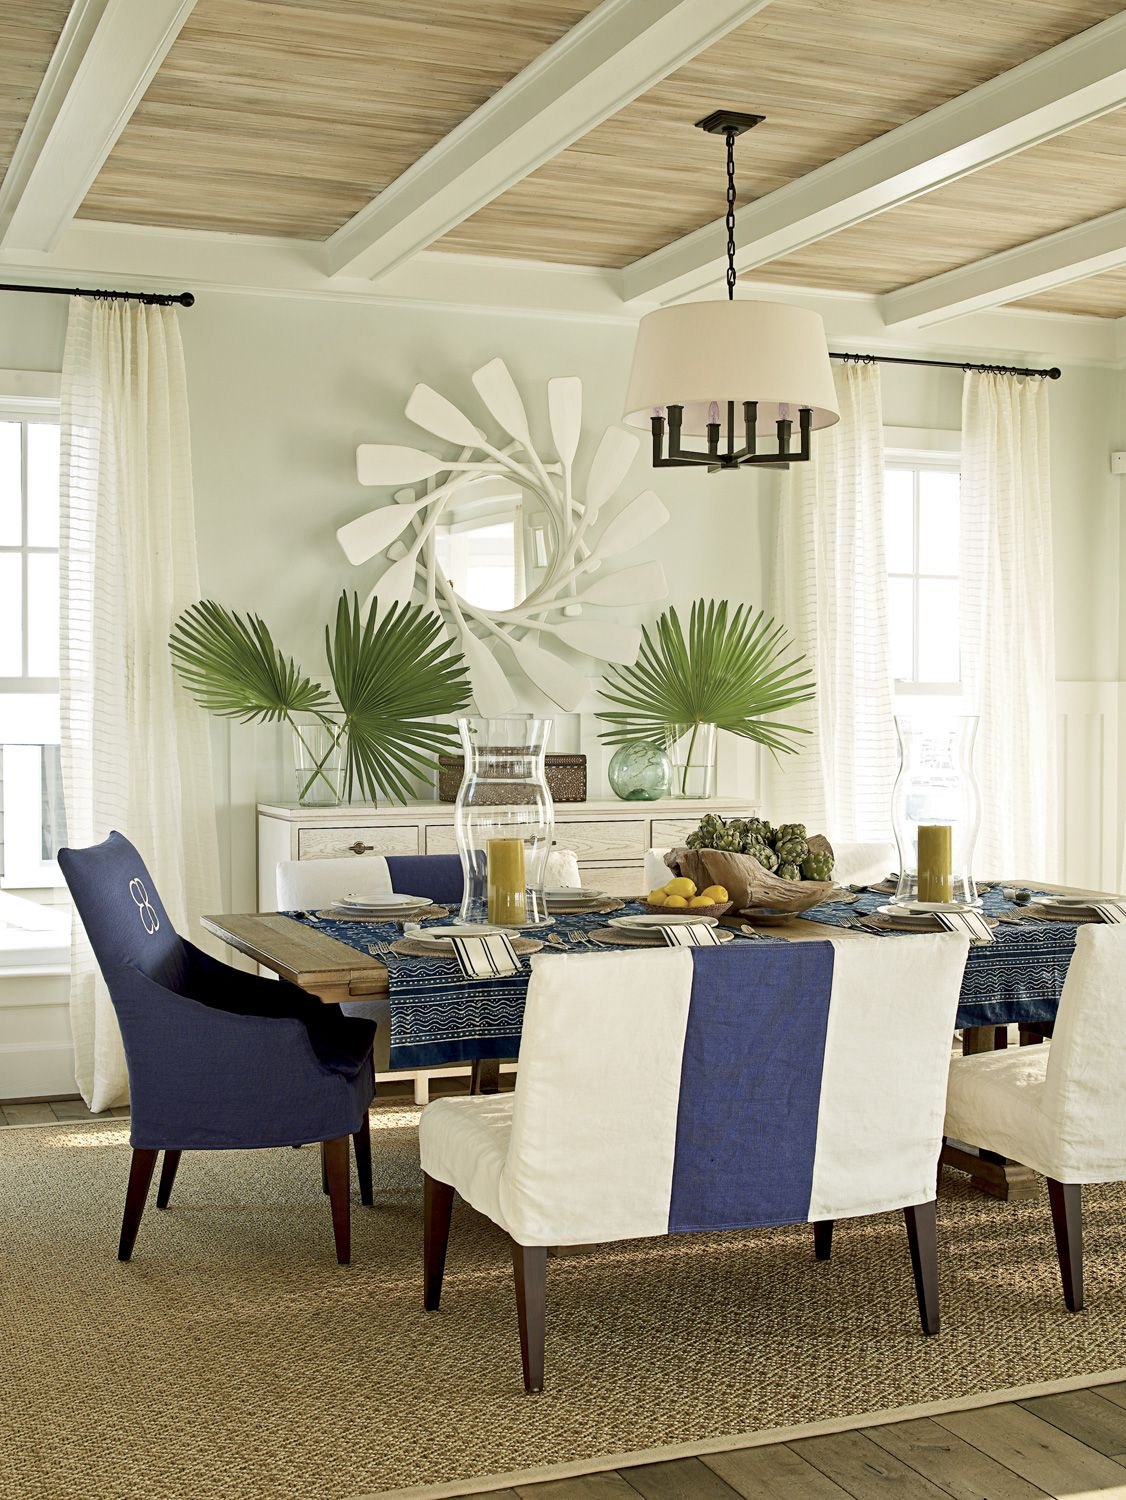 ceiling-finish-coastal-living-2011-ultimate-beach-house-interior